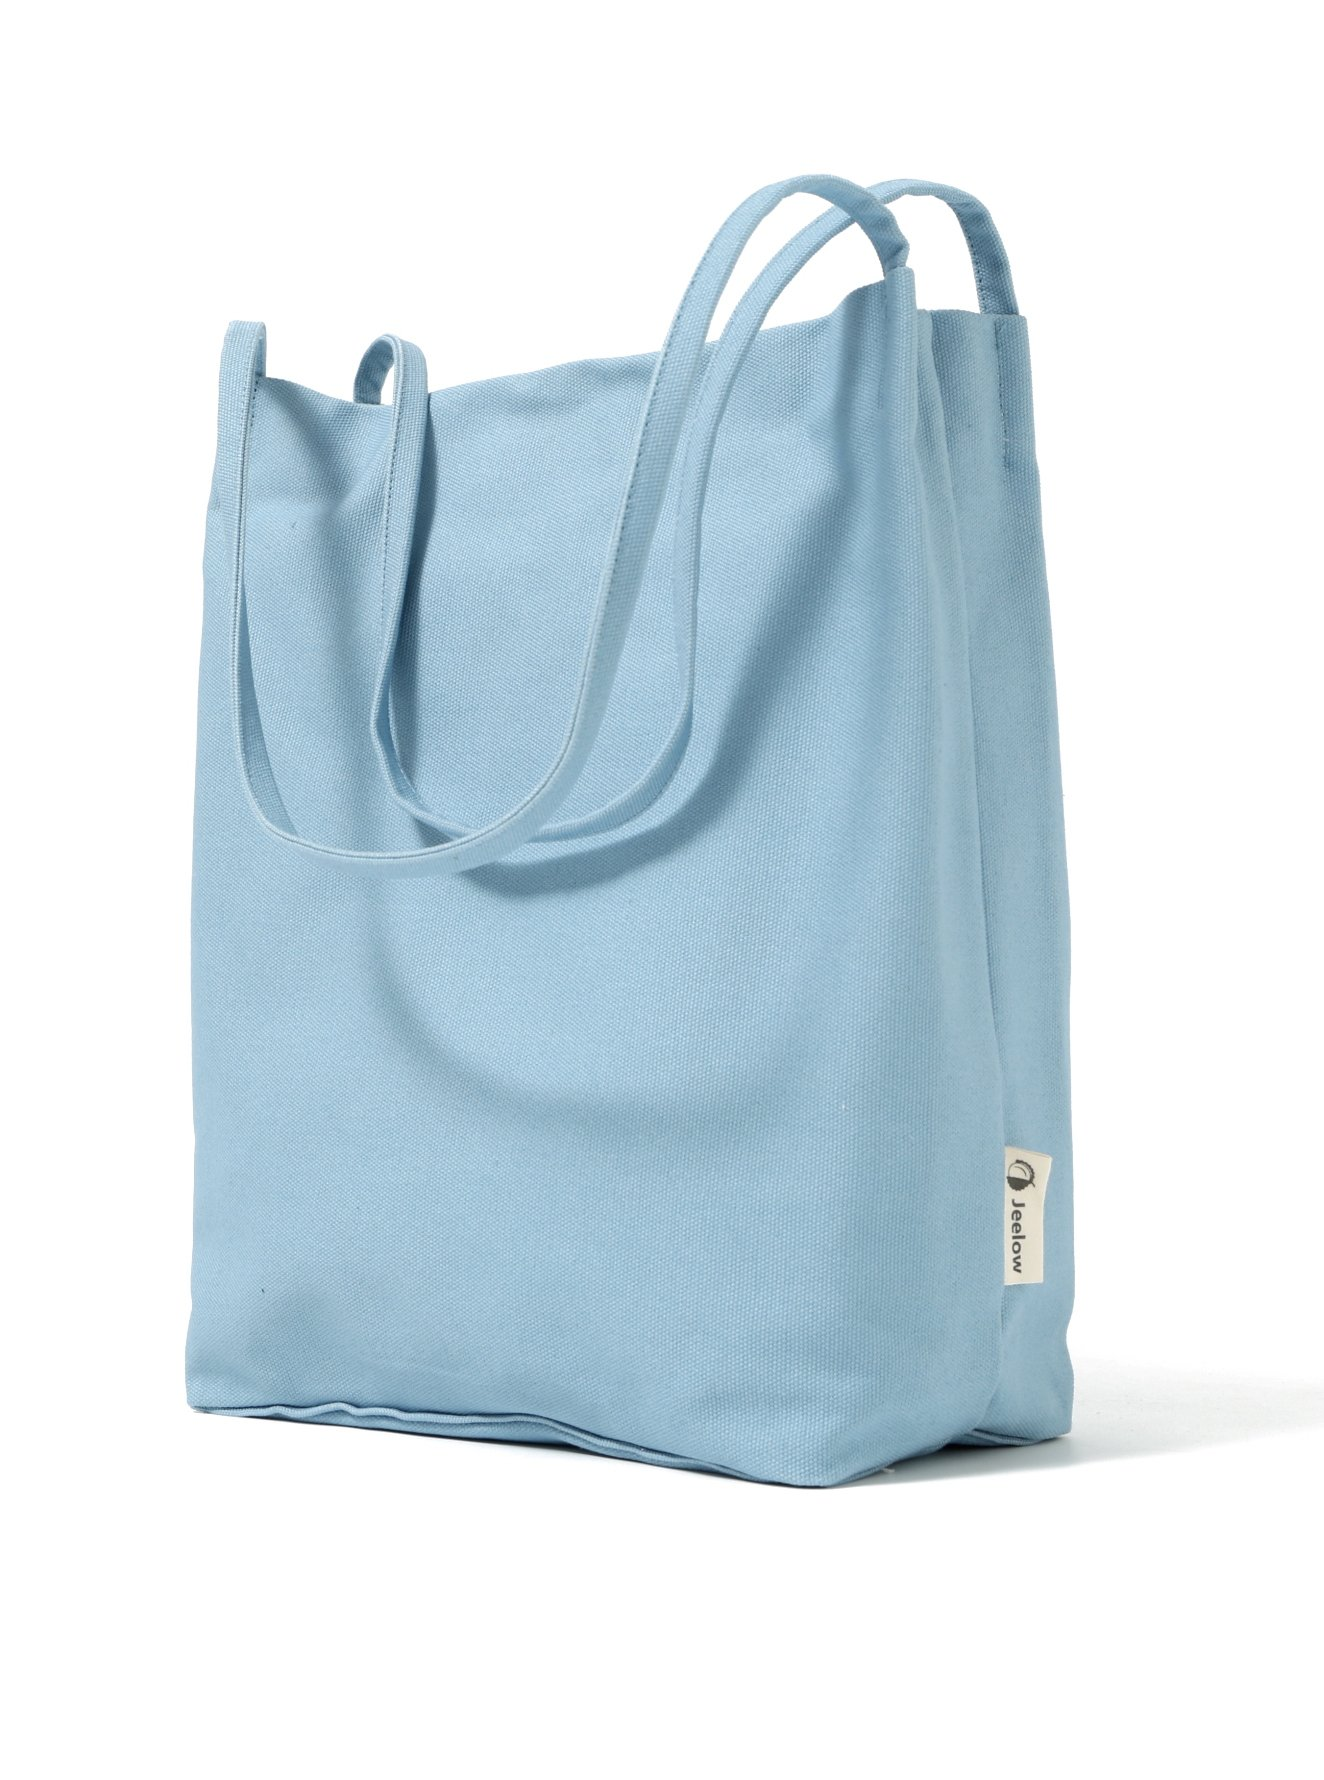 Canvas Tote Bag Handbag Shoulder Bag Purses For Men And Women (Light blue) by Jeelow (Image #1)